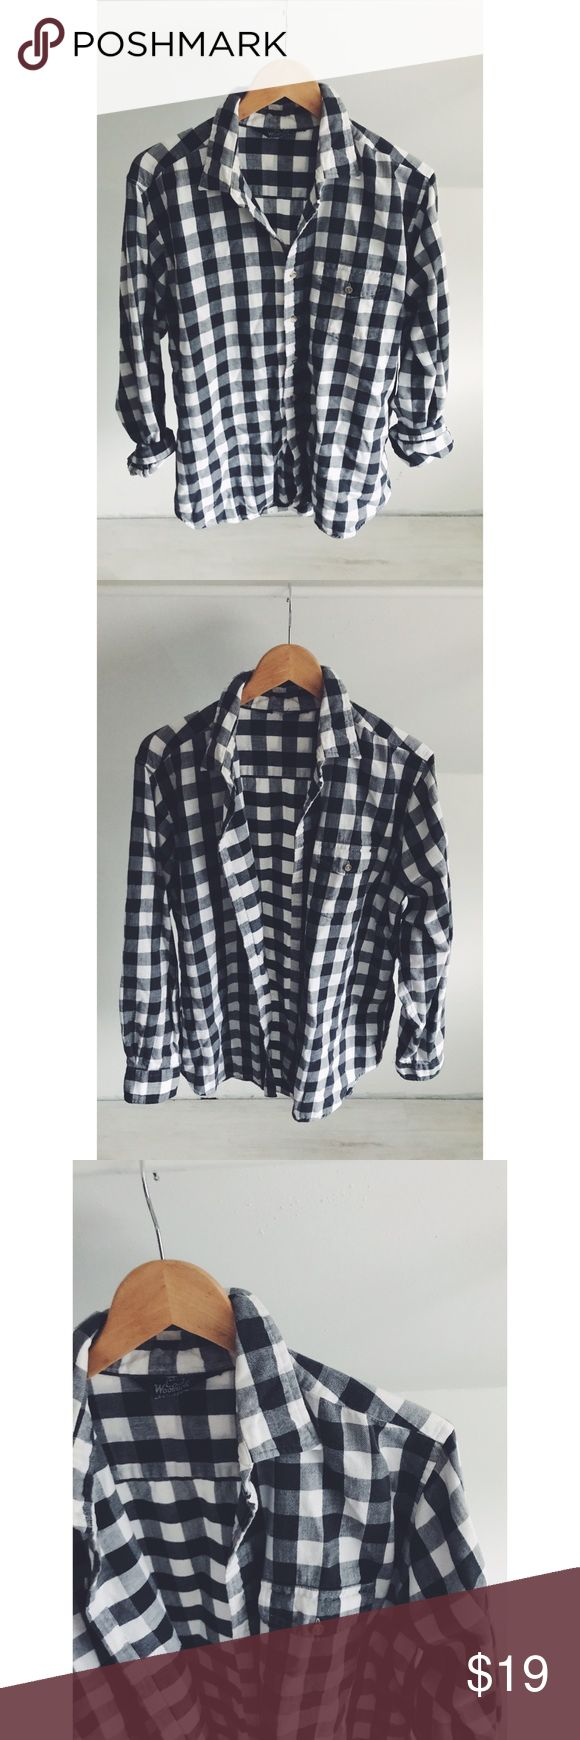 Woolrich Oversized Buffalo Check Flannel So cozy and perfect for year round wear! Soft flannel material in a chic buffalo Check print. Layer up in the cool weather months or add a statement necklace and heels for a lunch out👍 excellent, gently used condition. Black, white and grey color palette. Woolrich Tops Button Down Shirts